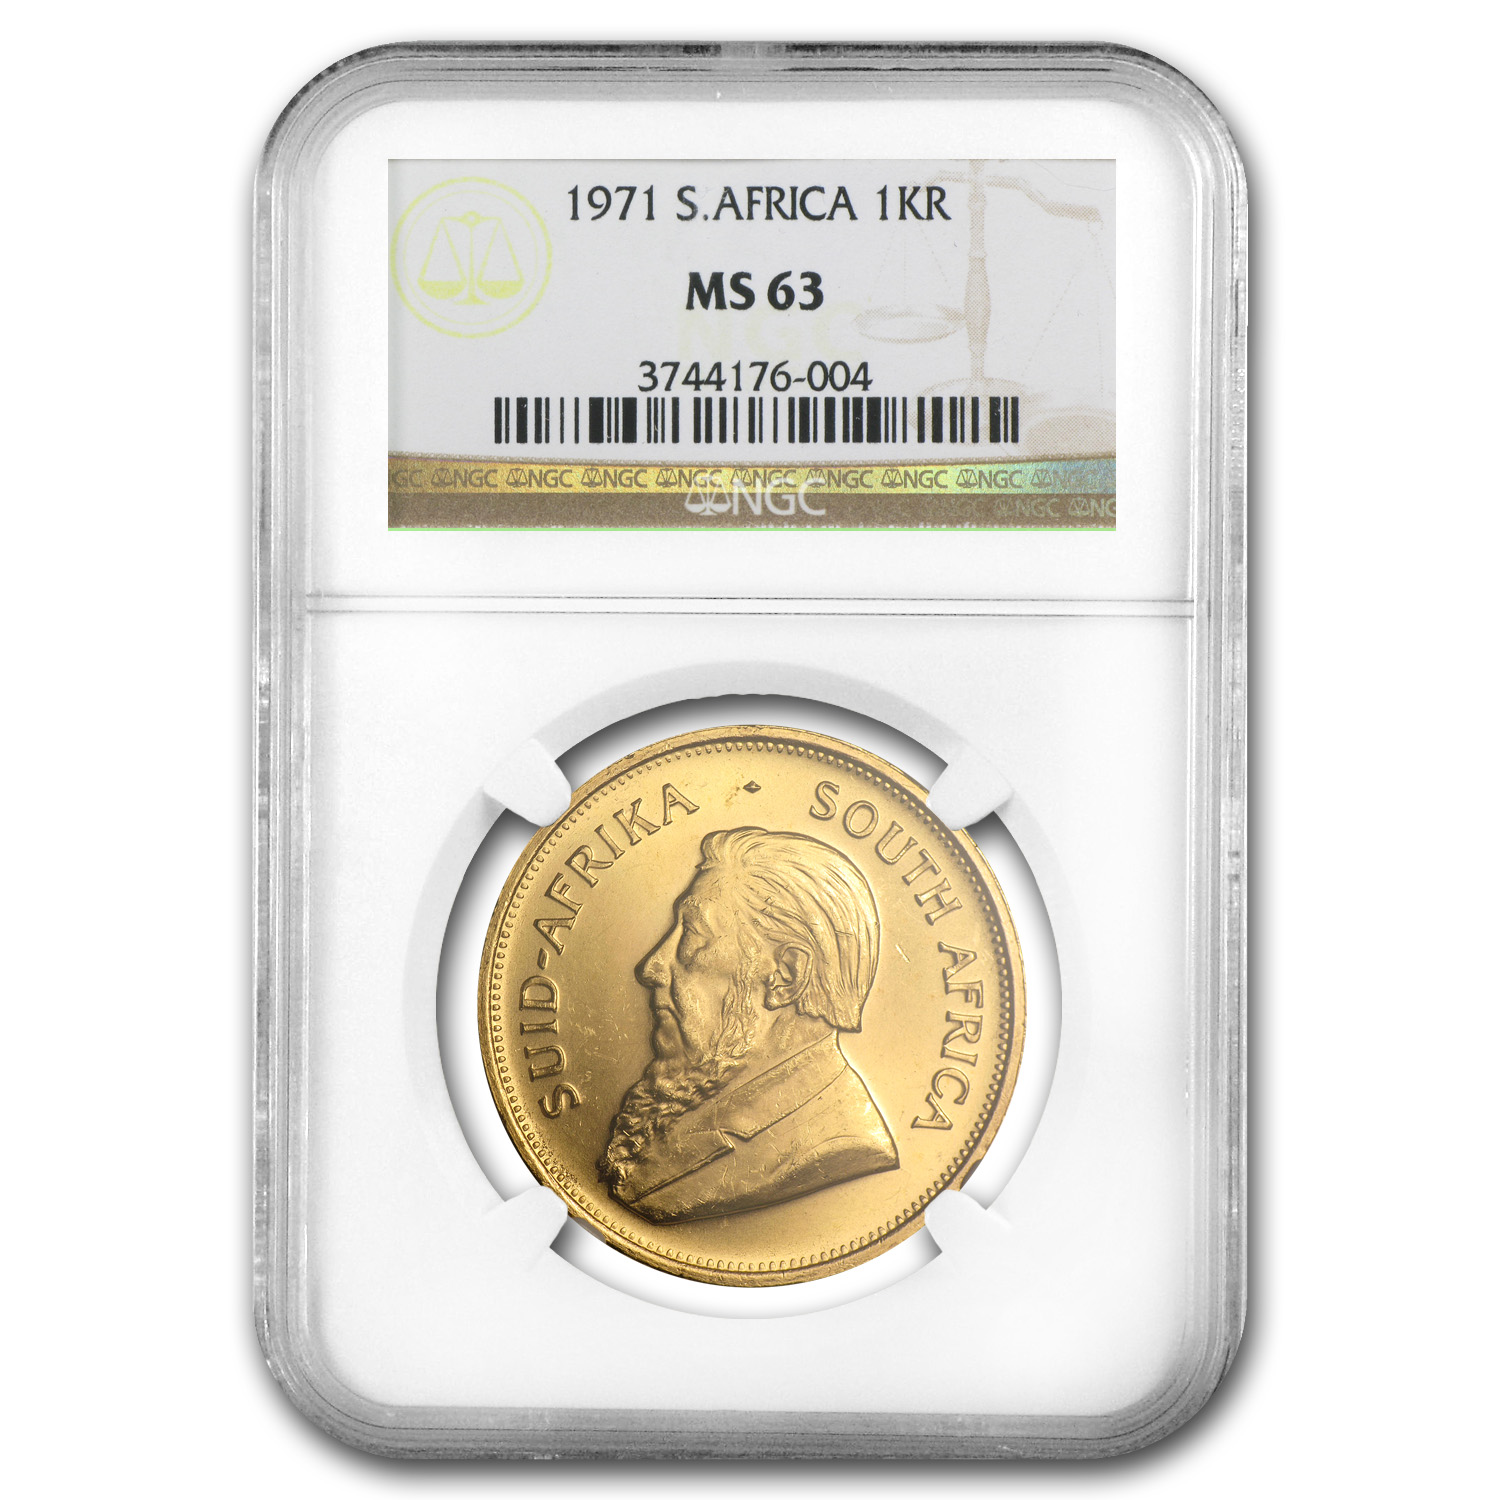 1971 1 oz Gold South African Krugerrand MS-63 NGC